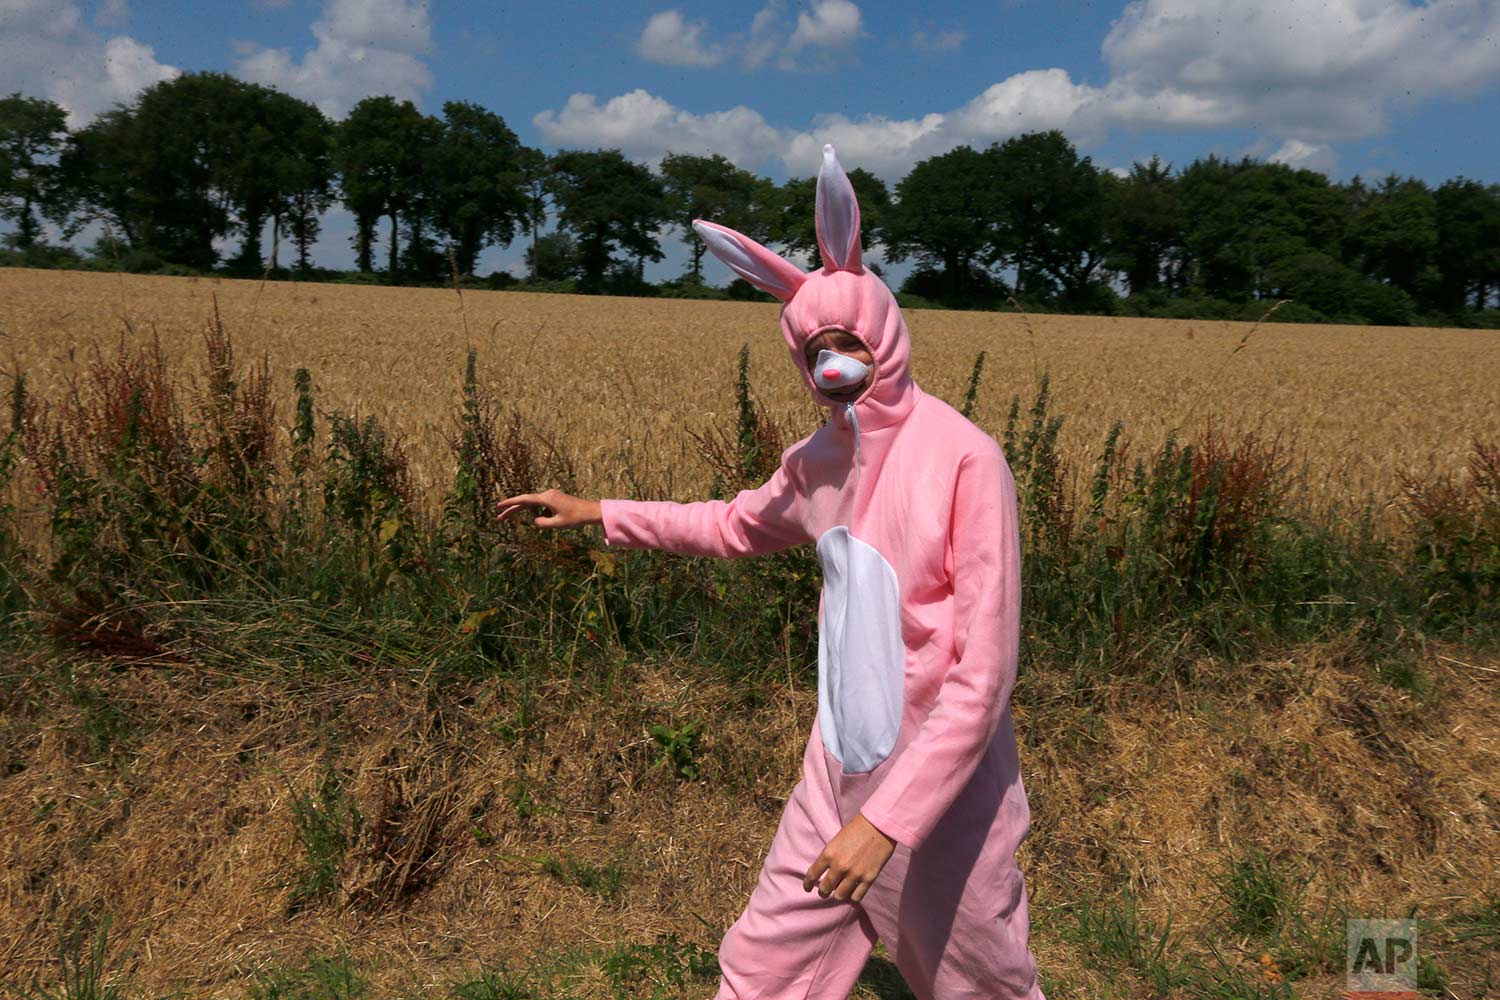 A spectator in a bunny costume waits for the pack of riders to pass during the sixth stage of the Tour de France cycling race over 181 kilometers (112.5 miles) with start in Brest and finish in Mur-de-Bretagne Guerledan, France, Thursday, July 12, 2018. (AP Photo/Peter Dejong)